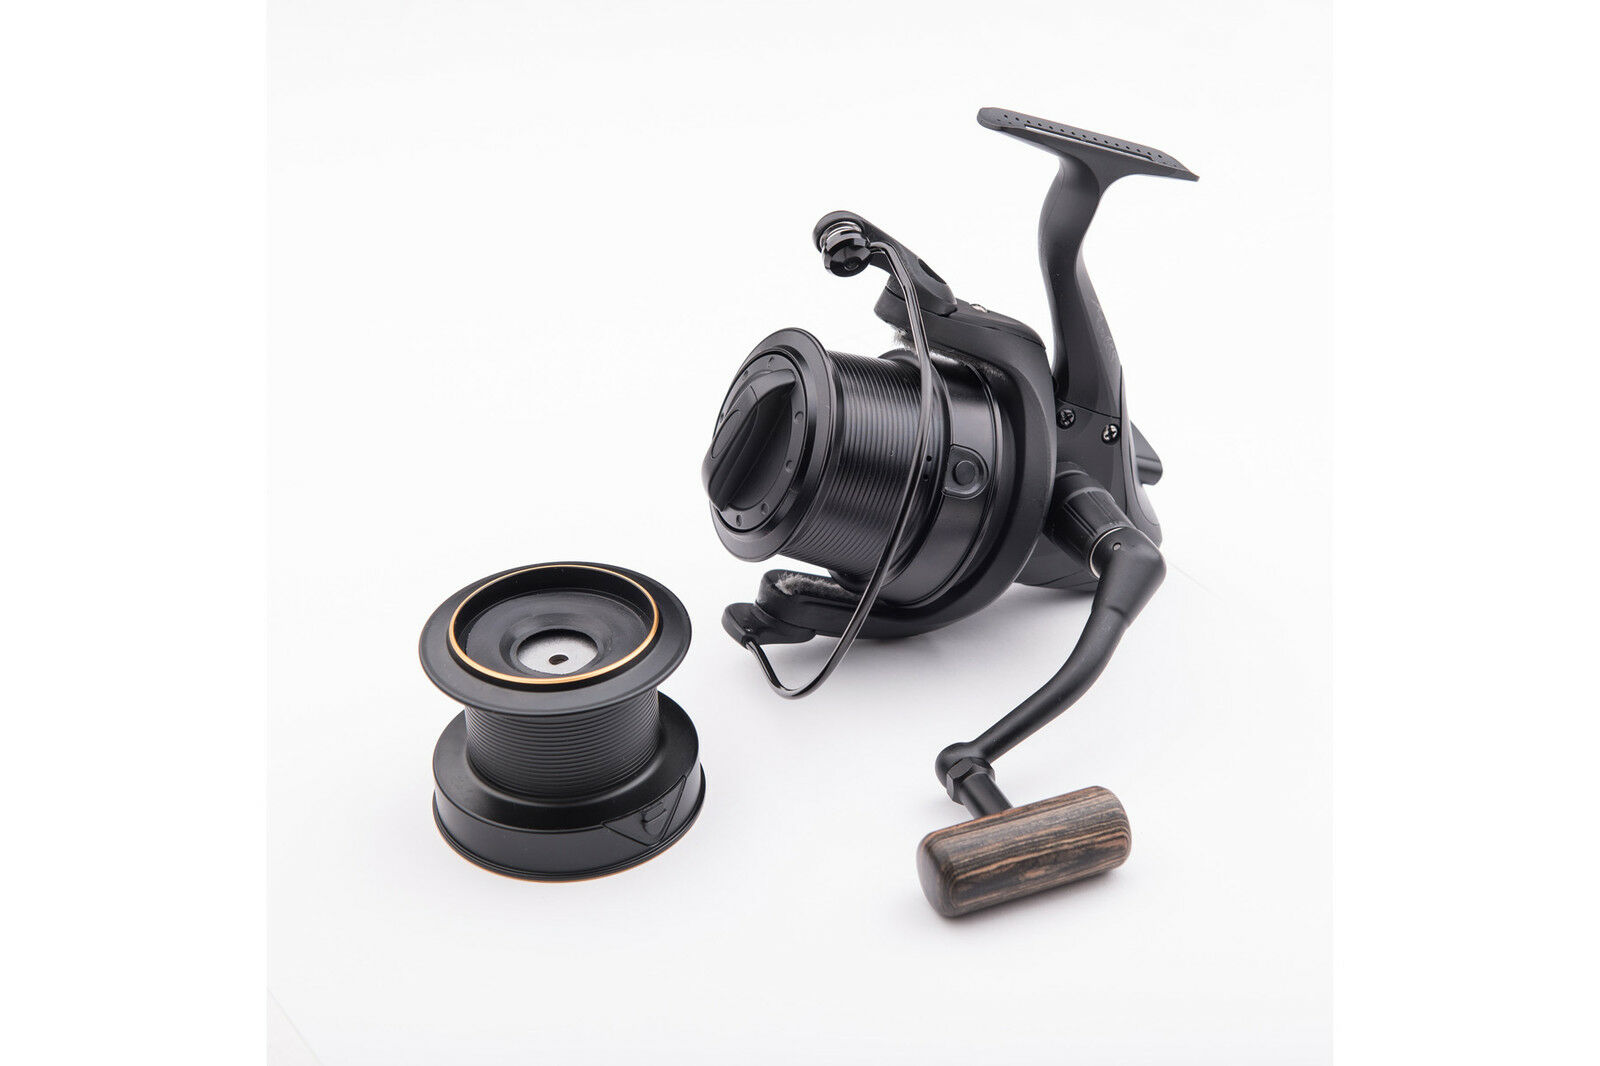 Wychwood Riot 65S Big Reel Pit Fixed Spool Reel Big / Carp Fishing / Leeda / C0875 81a0c7